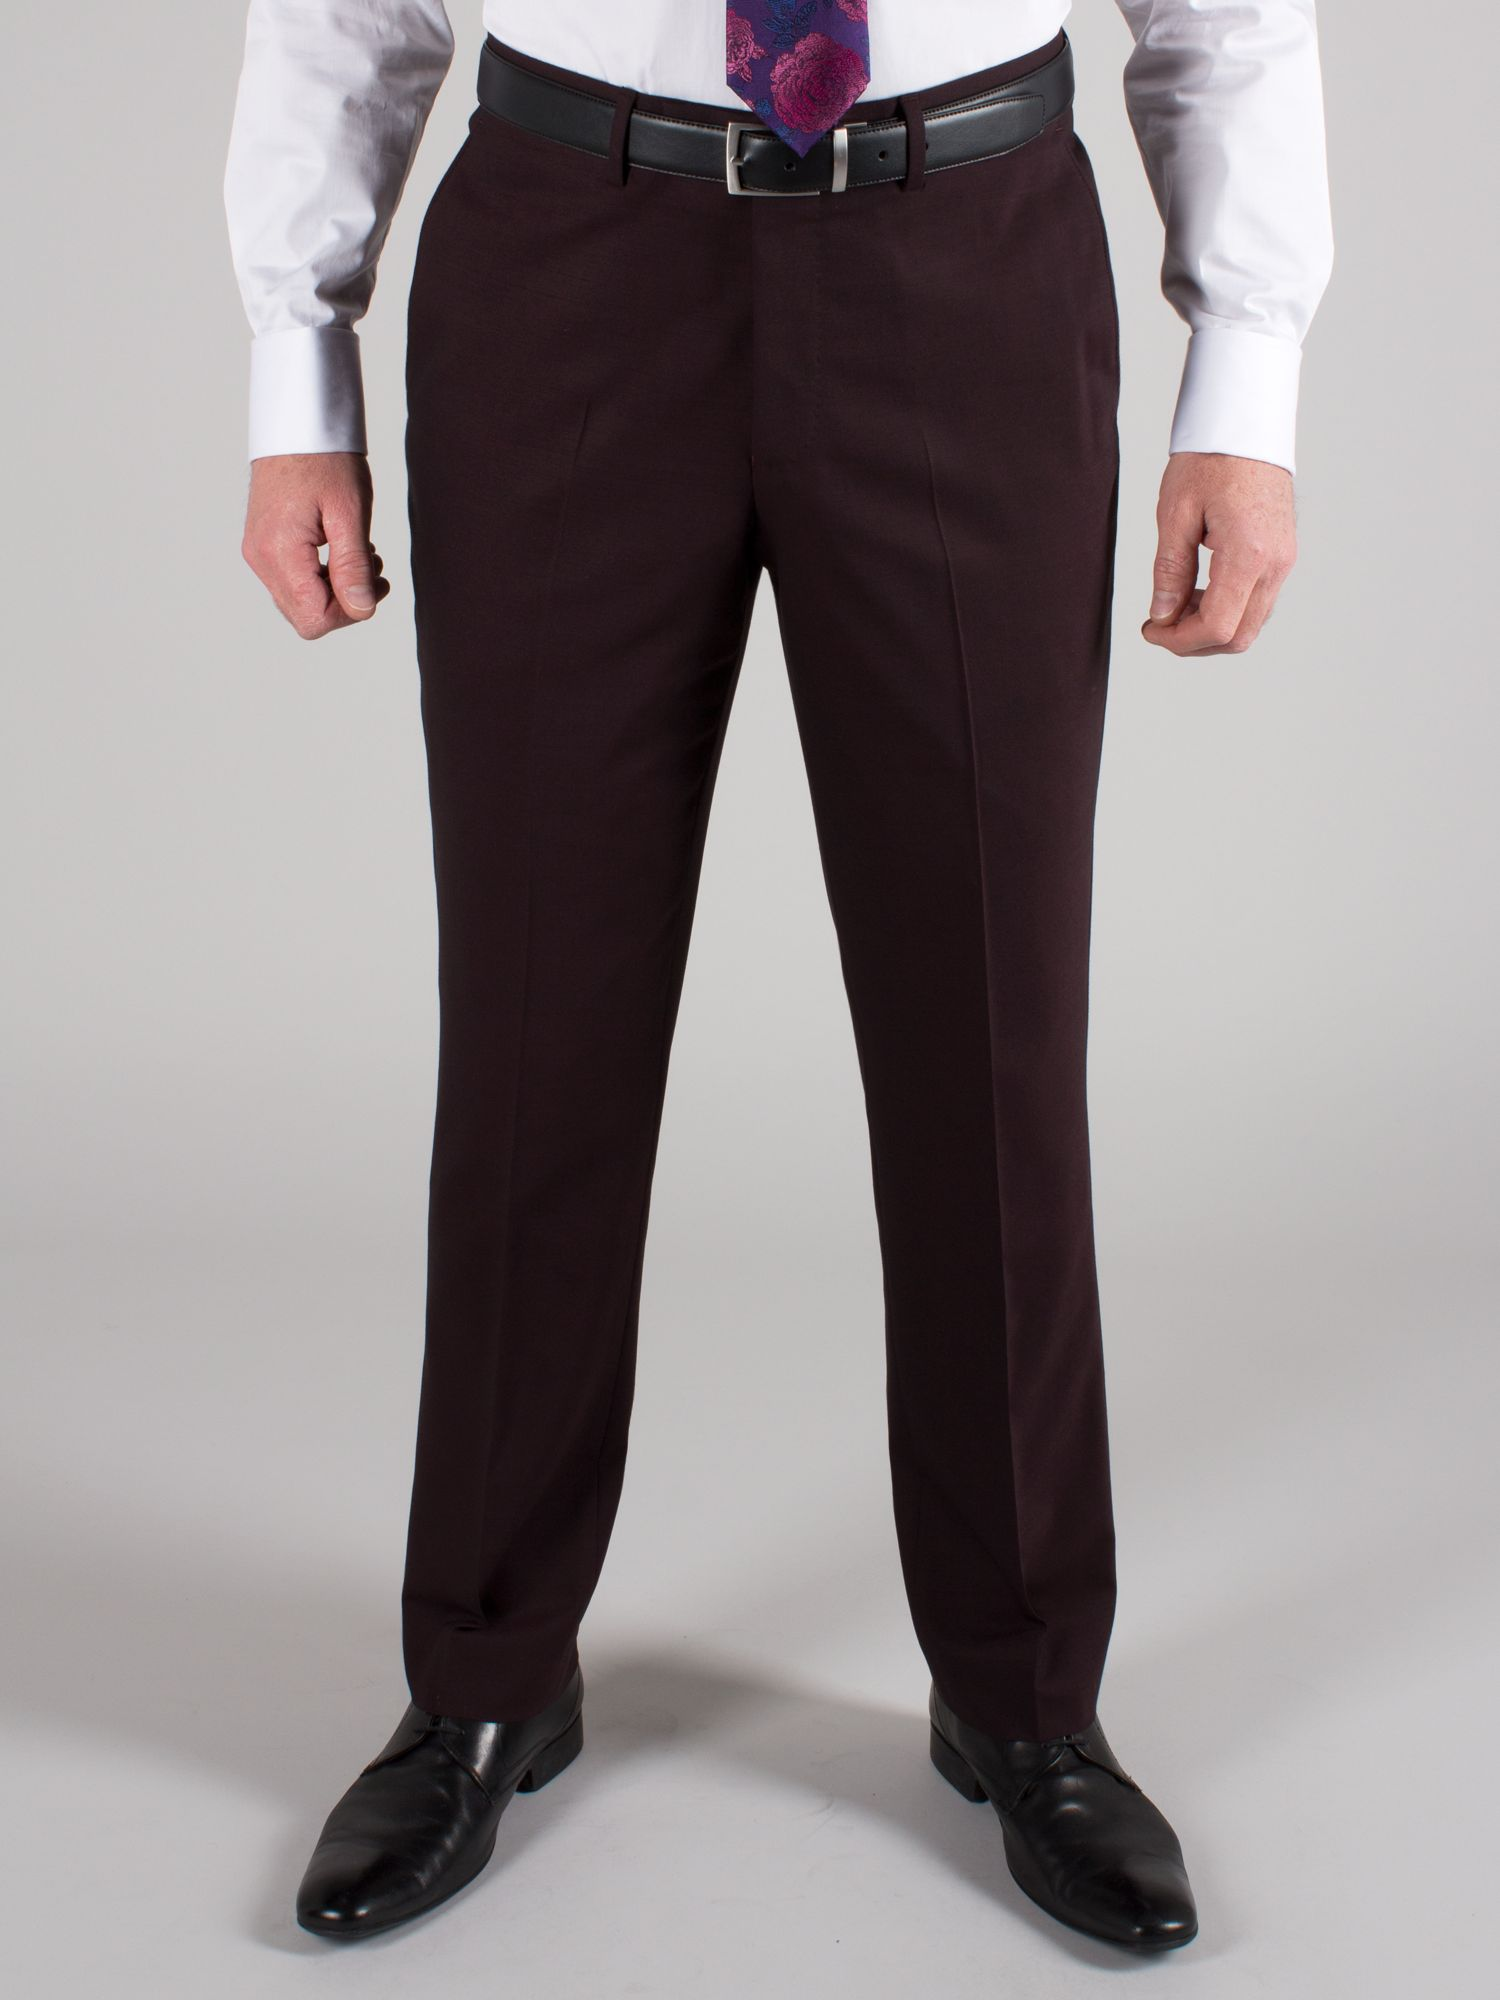 Plum plain trousers